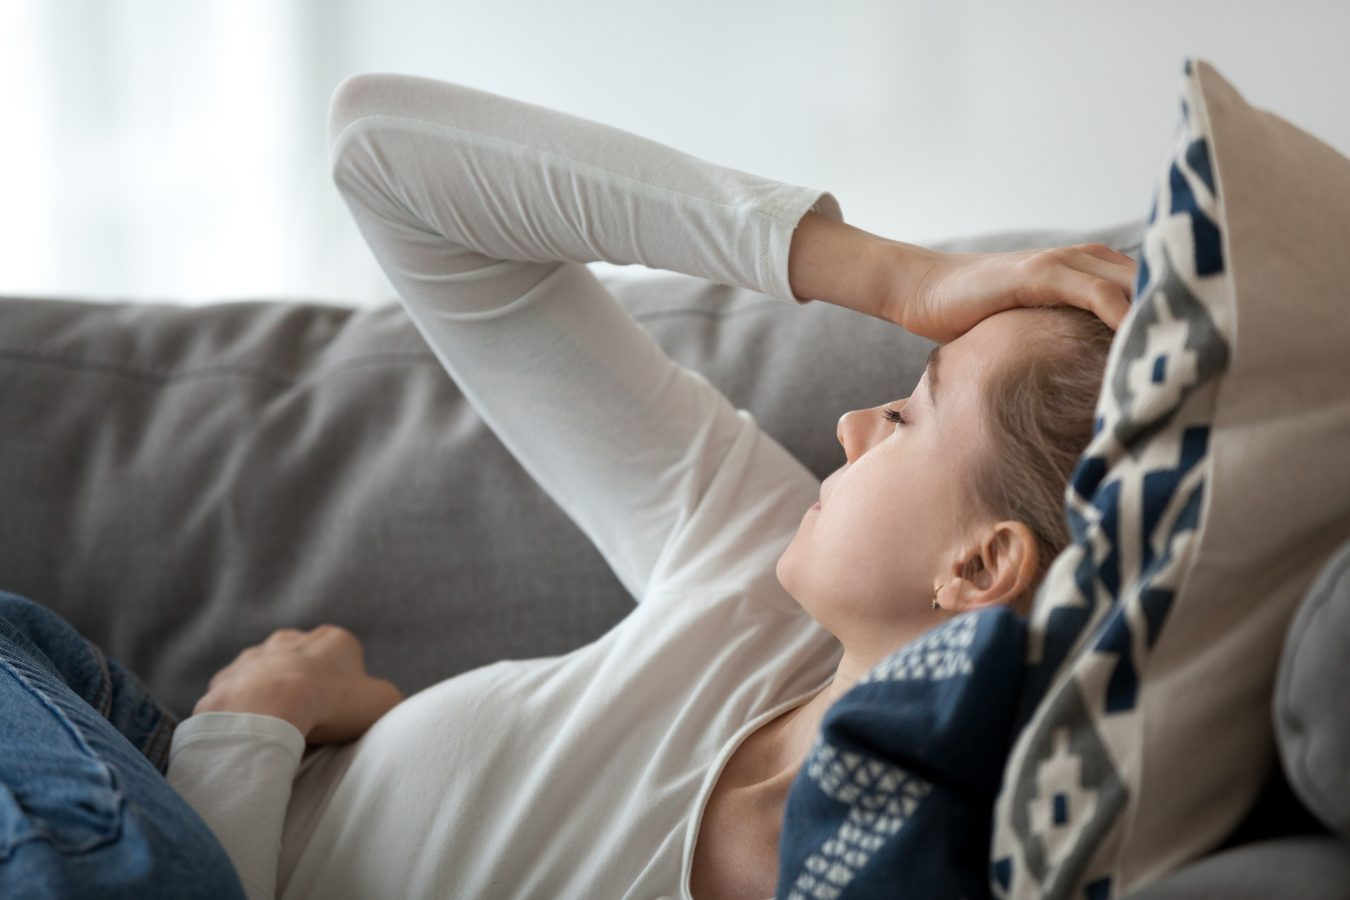 a woman experiencing the fatigue associated with anemia and depression